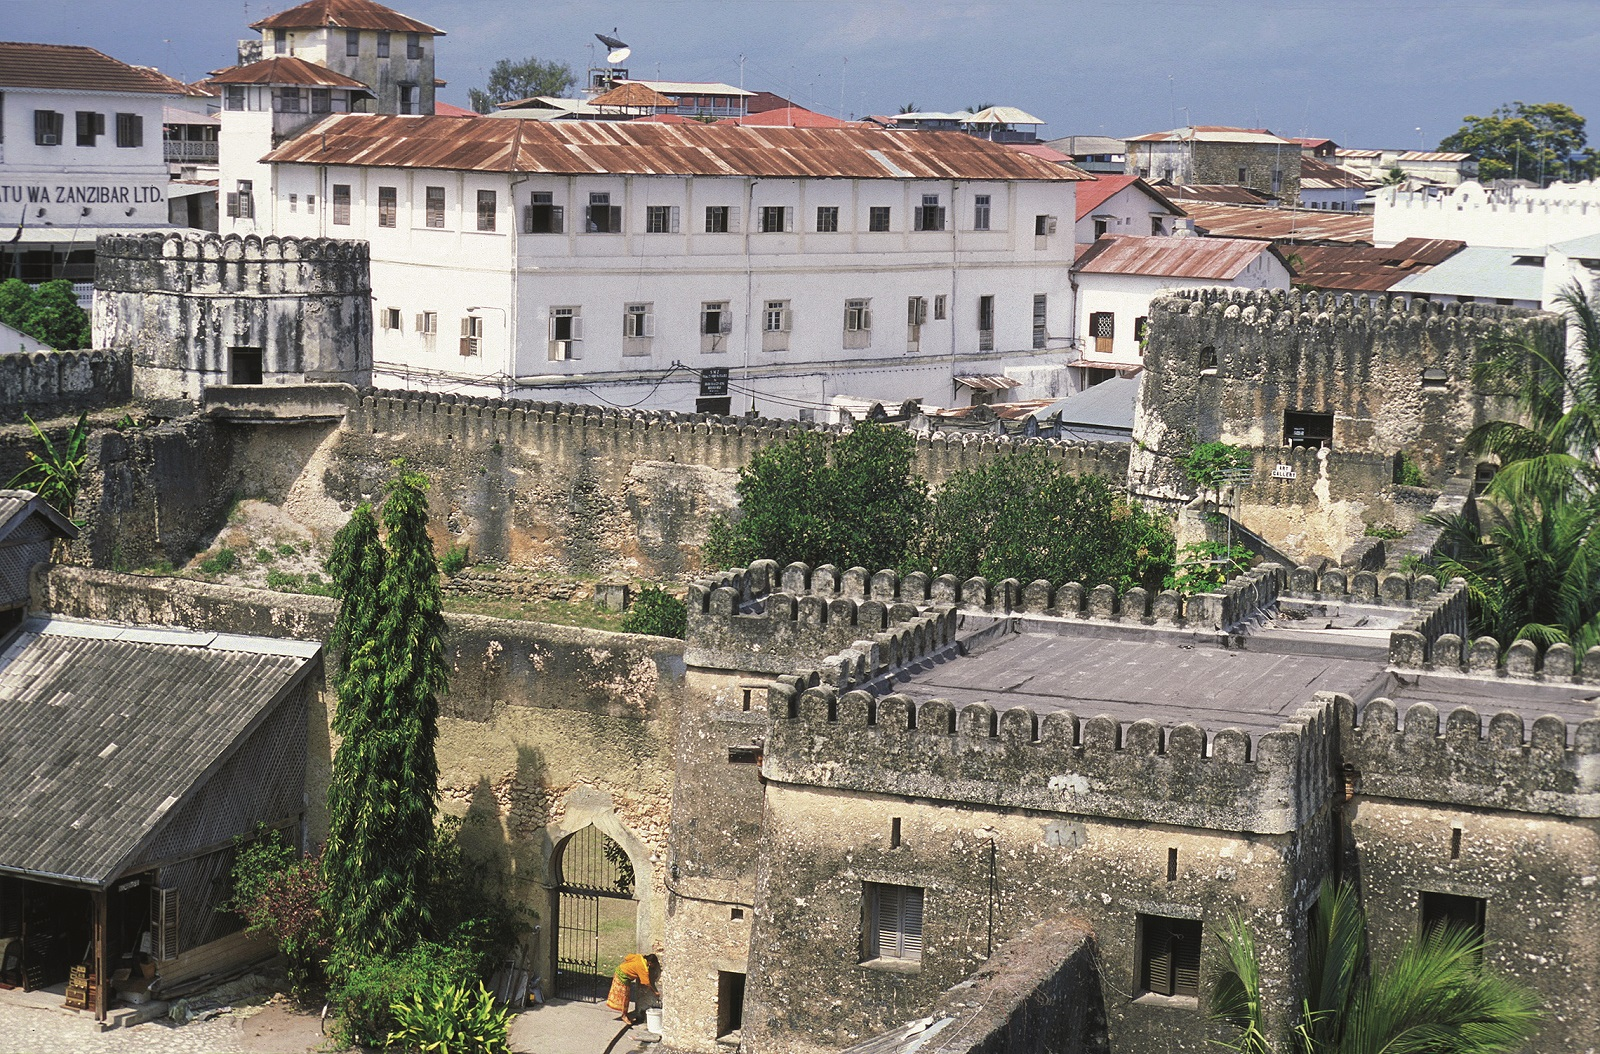 the old town stone town with the old fort in the capital zanzibar town on the island zanzibar which belongs to tanzania.,Image: 522513757, License: Royalty-free, Restrictions: , Model Release: no, Credit line: ursa lexander flueler / Panthermedia / Profimedia